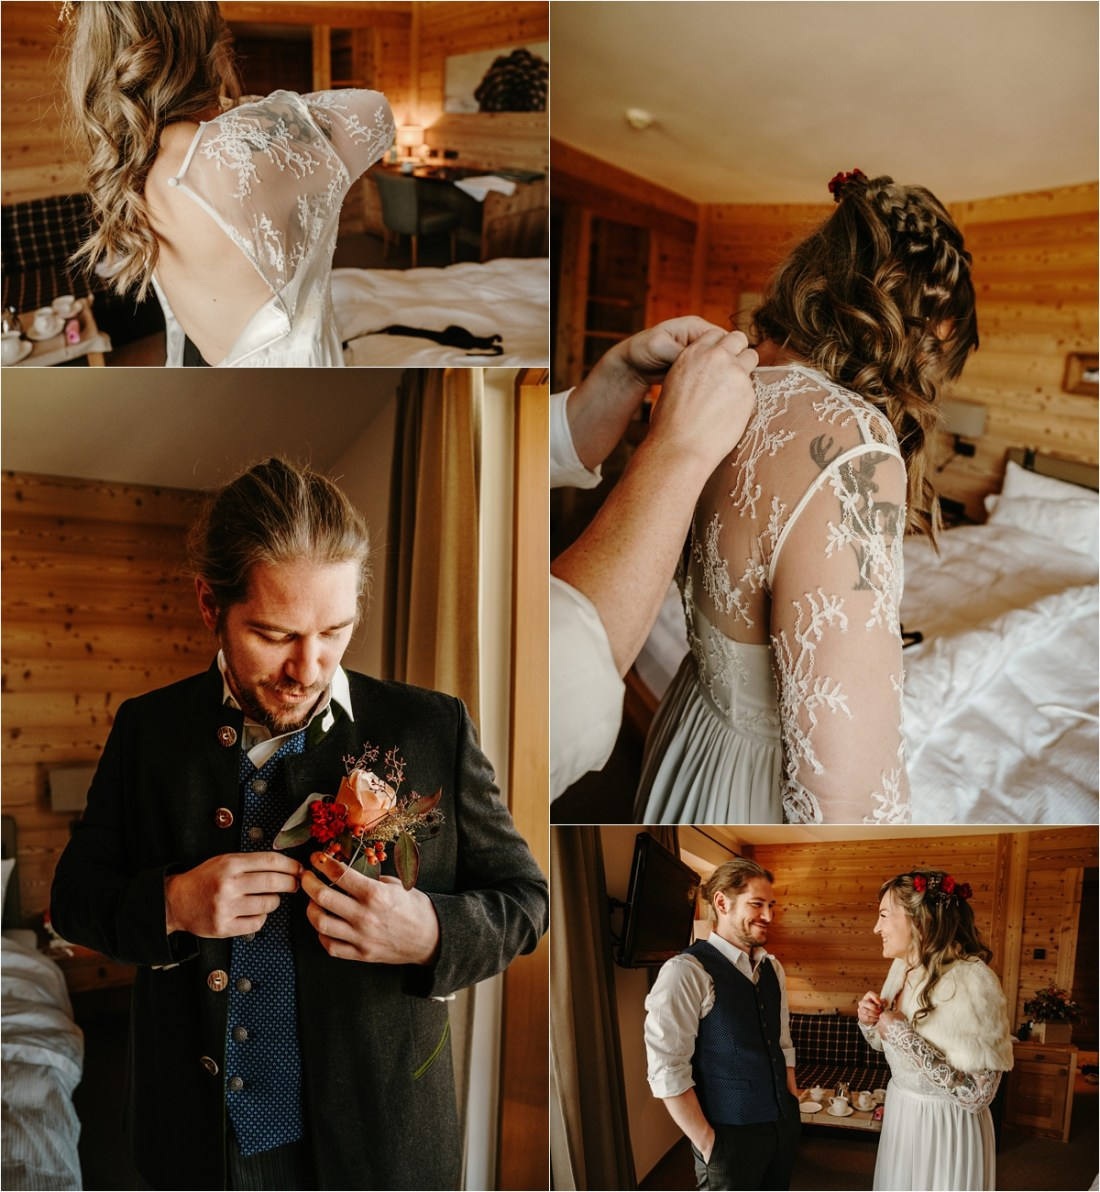 The bide and groom get ready together on their elopement day in the Dolomites. Photos by Wild Connections Photography